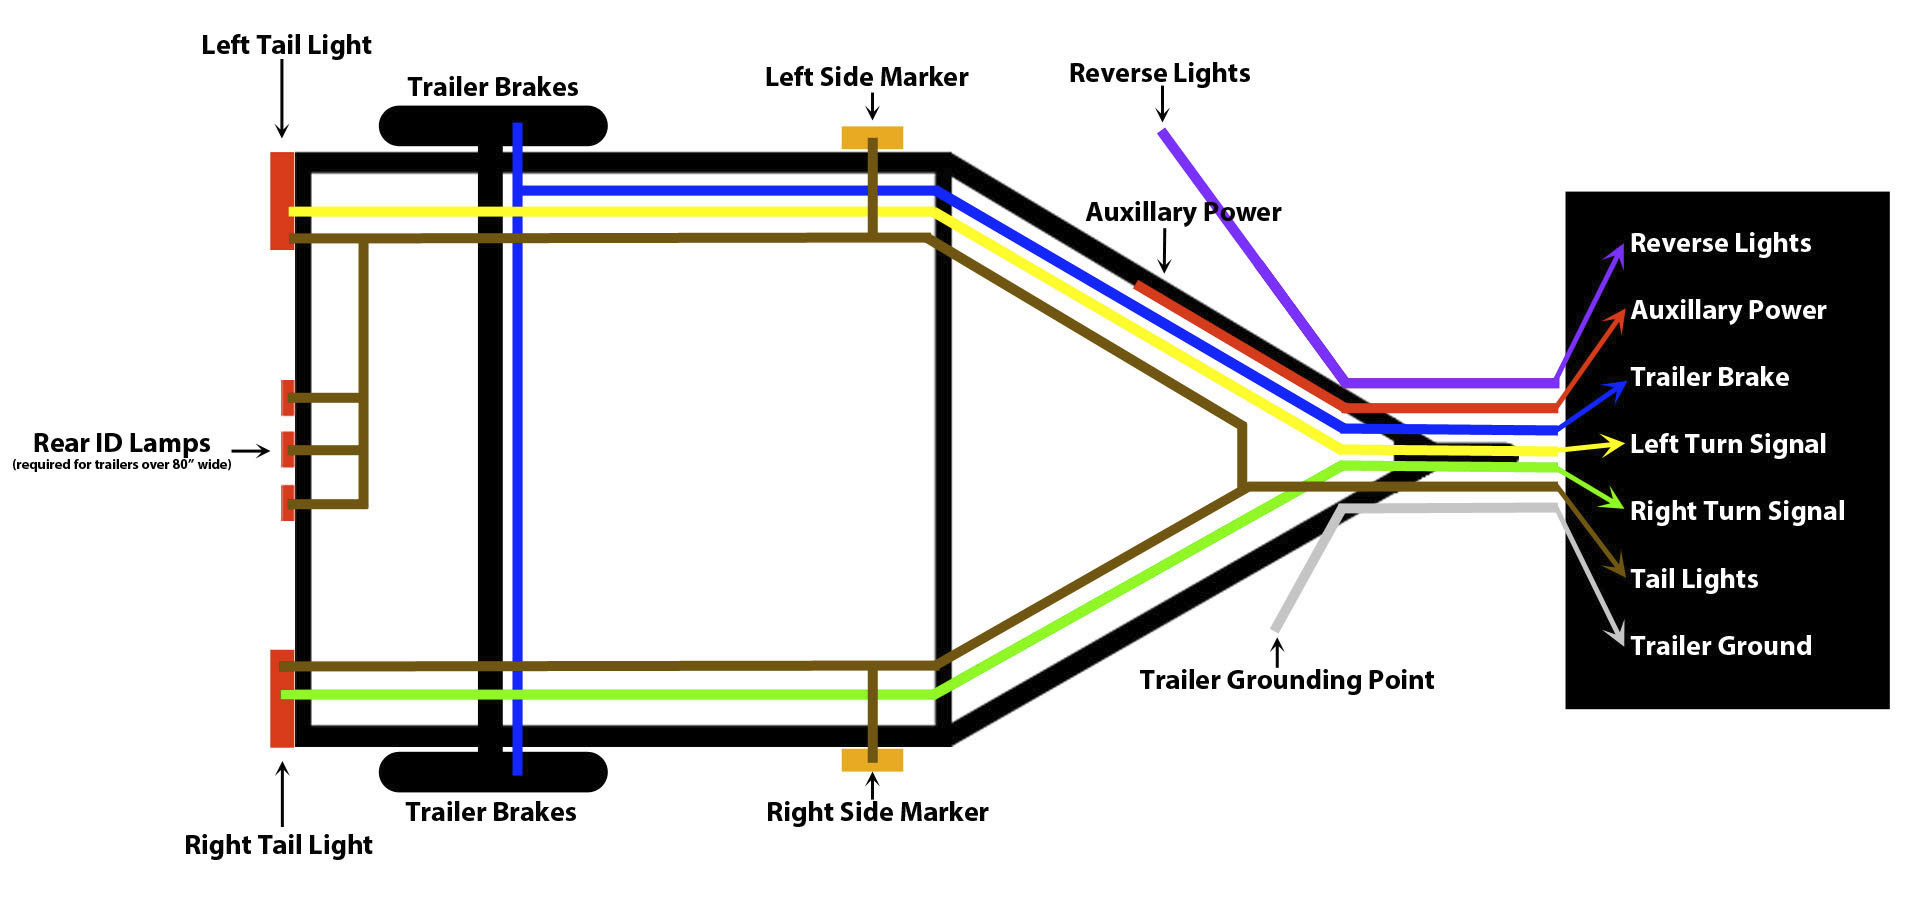 How To Wire Trailer Lights - Trailer Wiring Guide & Videos - Trailer Light Wiring Diagram 4 Way